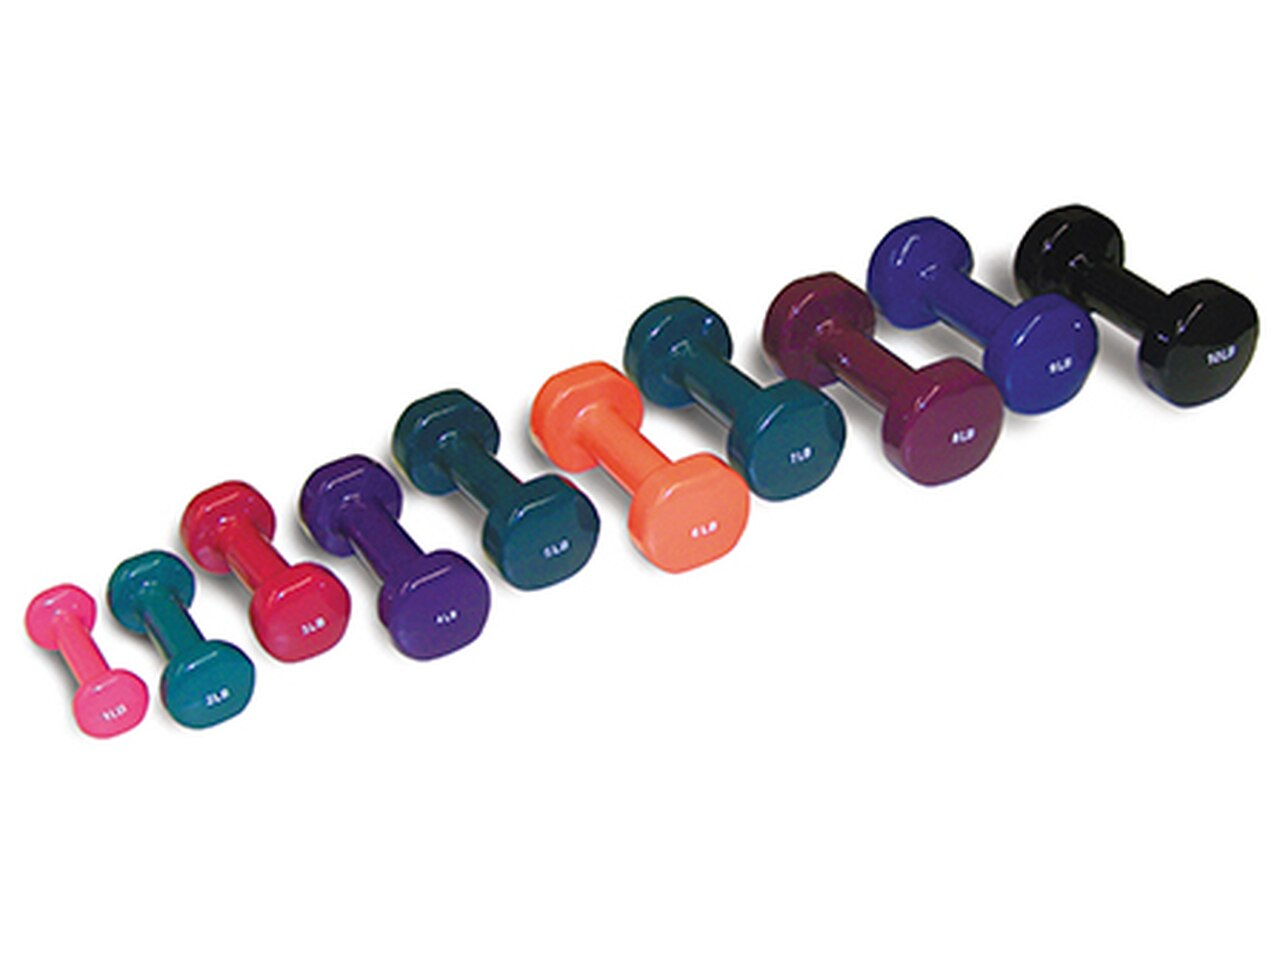 BodyPro Vinyl Dumbbells